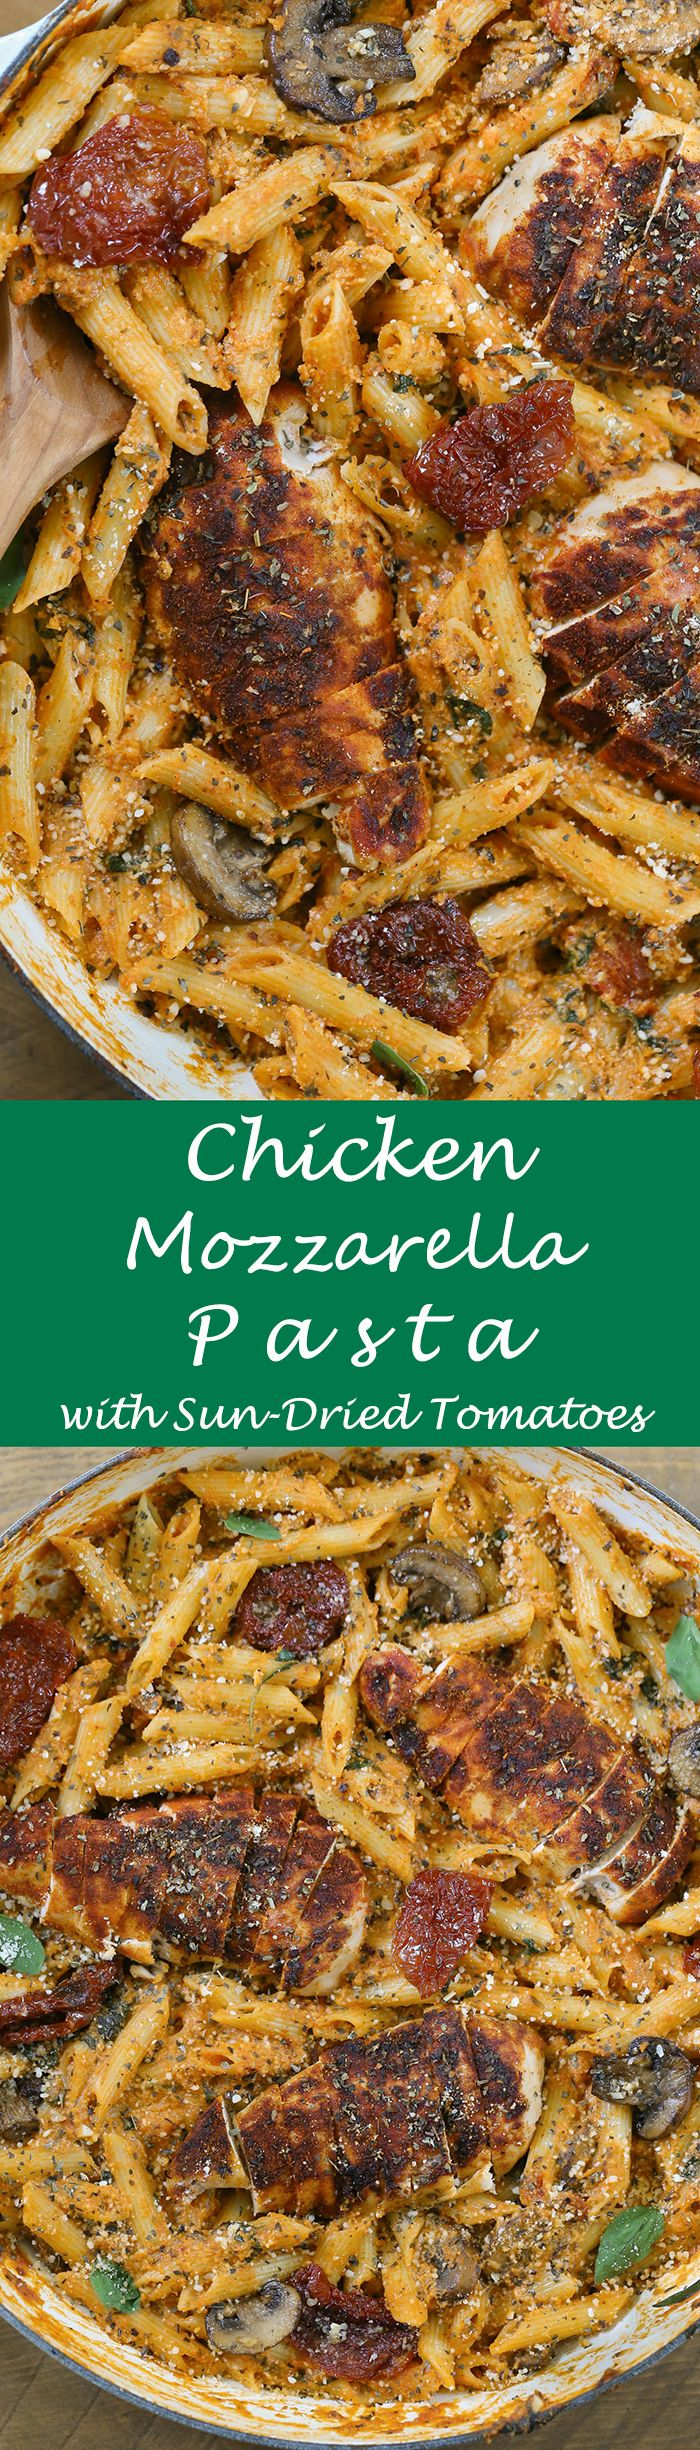 Chicken Mozzarella Pasta - Pan seared sun-dried tomatoes and oven-roasted chicken with sauteed mushrooms, garlic, and spinach added to a rich and flavorful creamy mozzarella marinara sauce with penne pasta. Pan tossed with parmesan cheese and herbs to give a robust Tuscan flavor. This recipe will become a family favorite. #ad